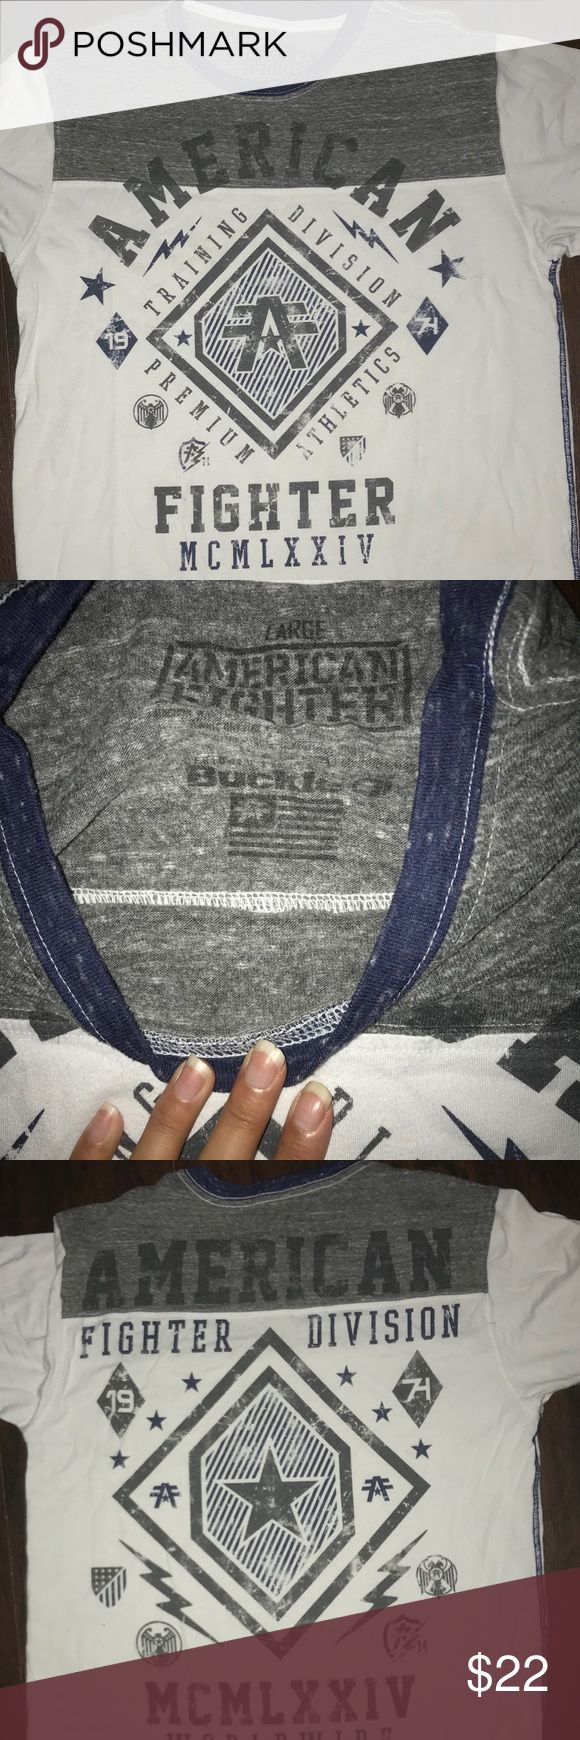 American fighter Great condition, no holes or stains American Fighter Shirts